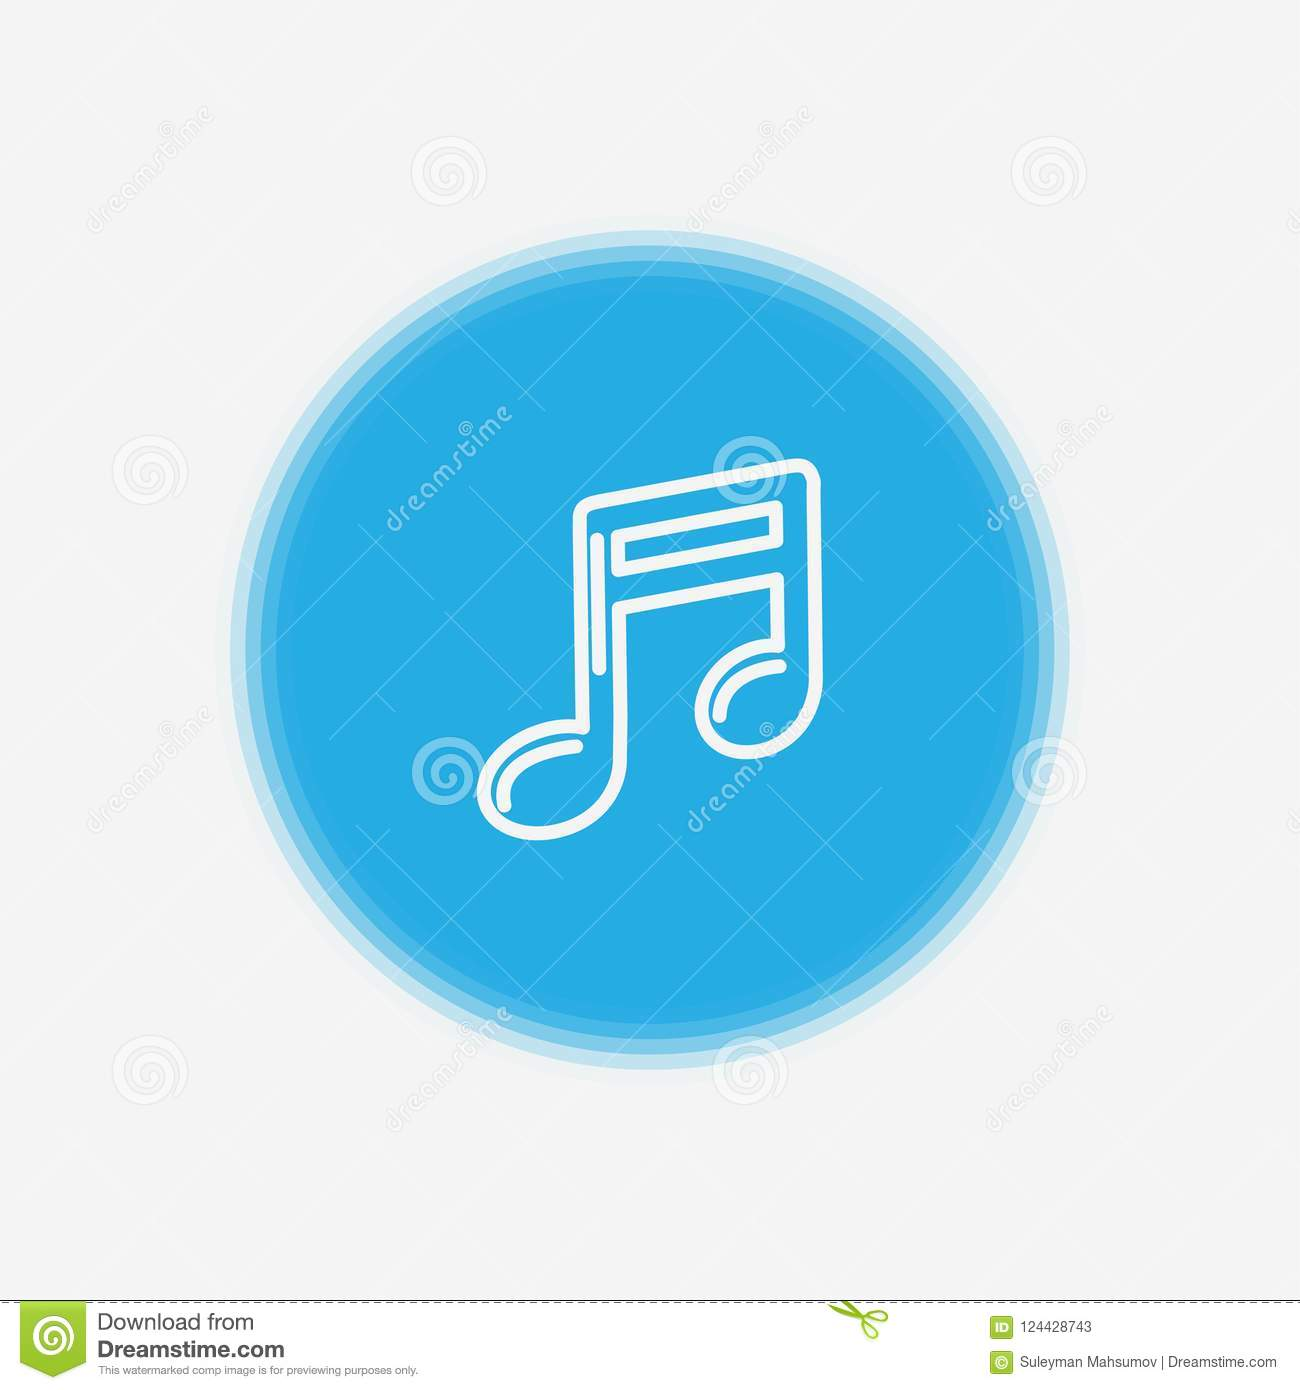 Musical Note Icon Sign Symbol Stock Vector Illustration Of Element